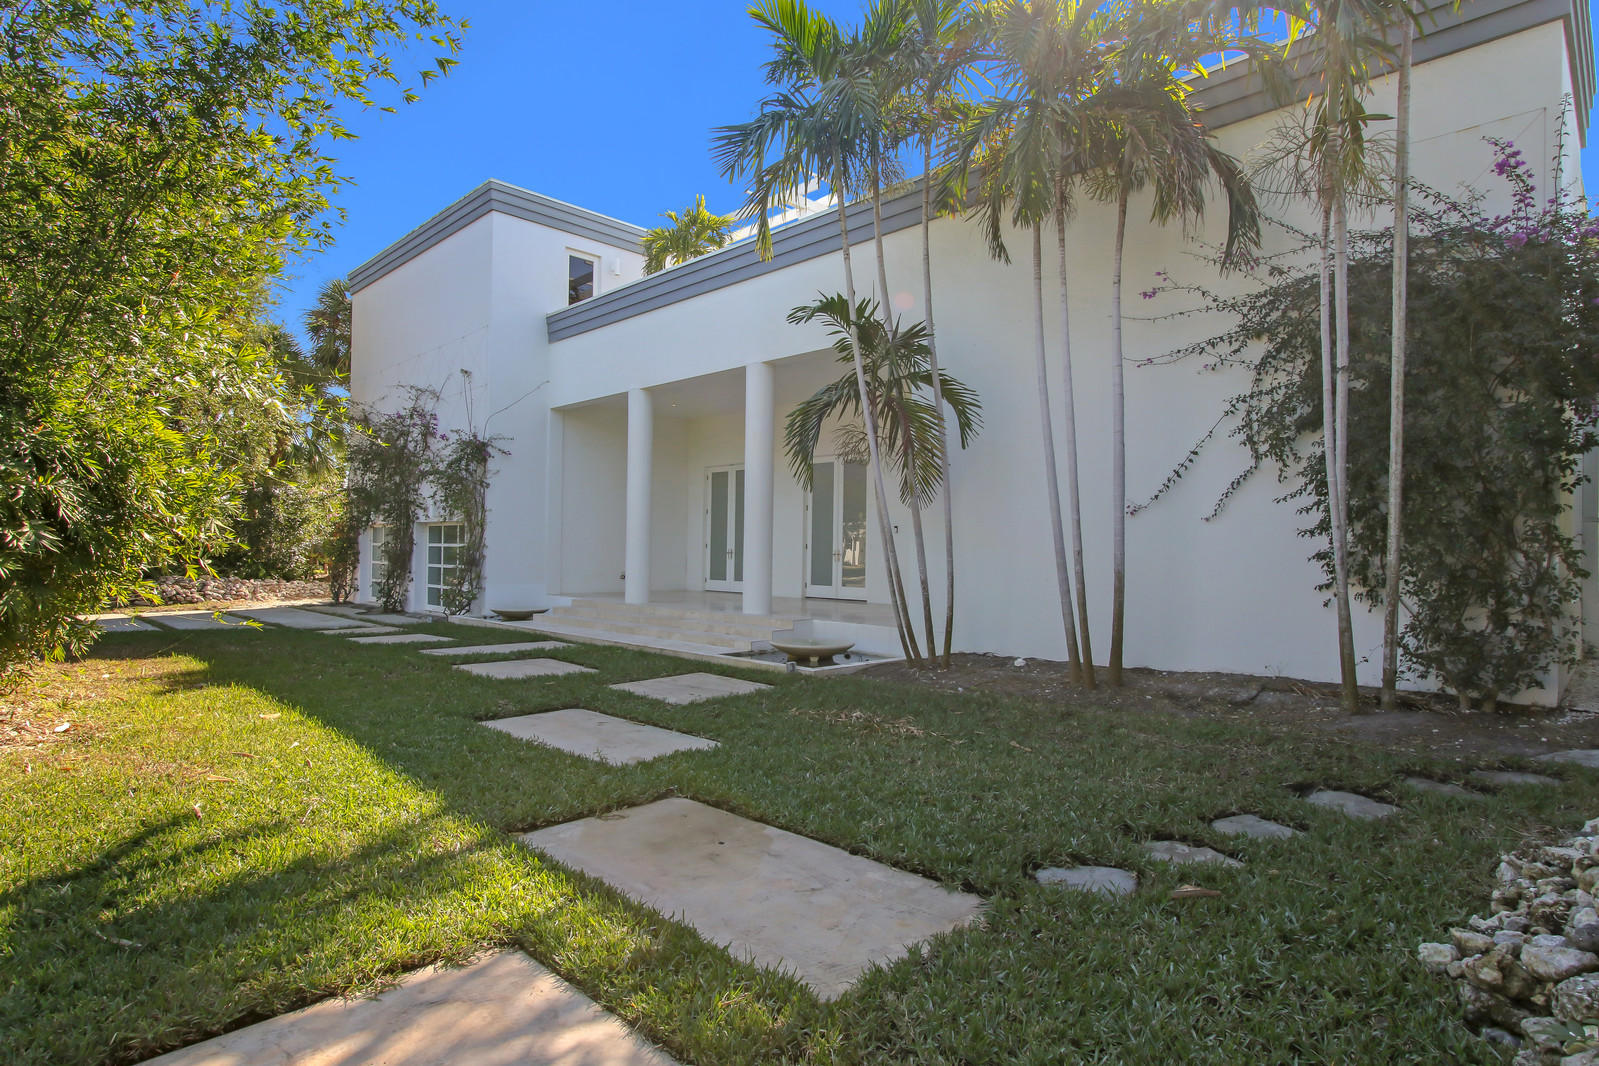 230 Miramar Way, West Palm Beach, Florida 33405, 5 Bedrooms Bedrooms, ,6.1 BathroomsBathrooms,Single Family,For Rent,Miramar,1,RX-10531375